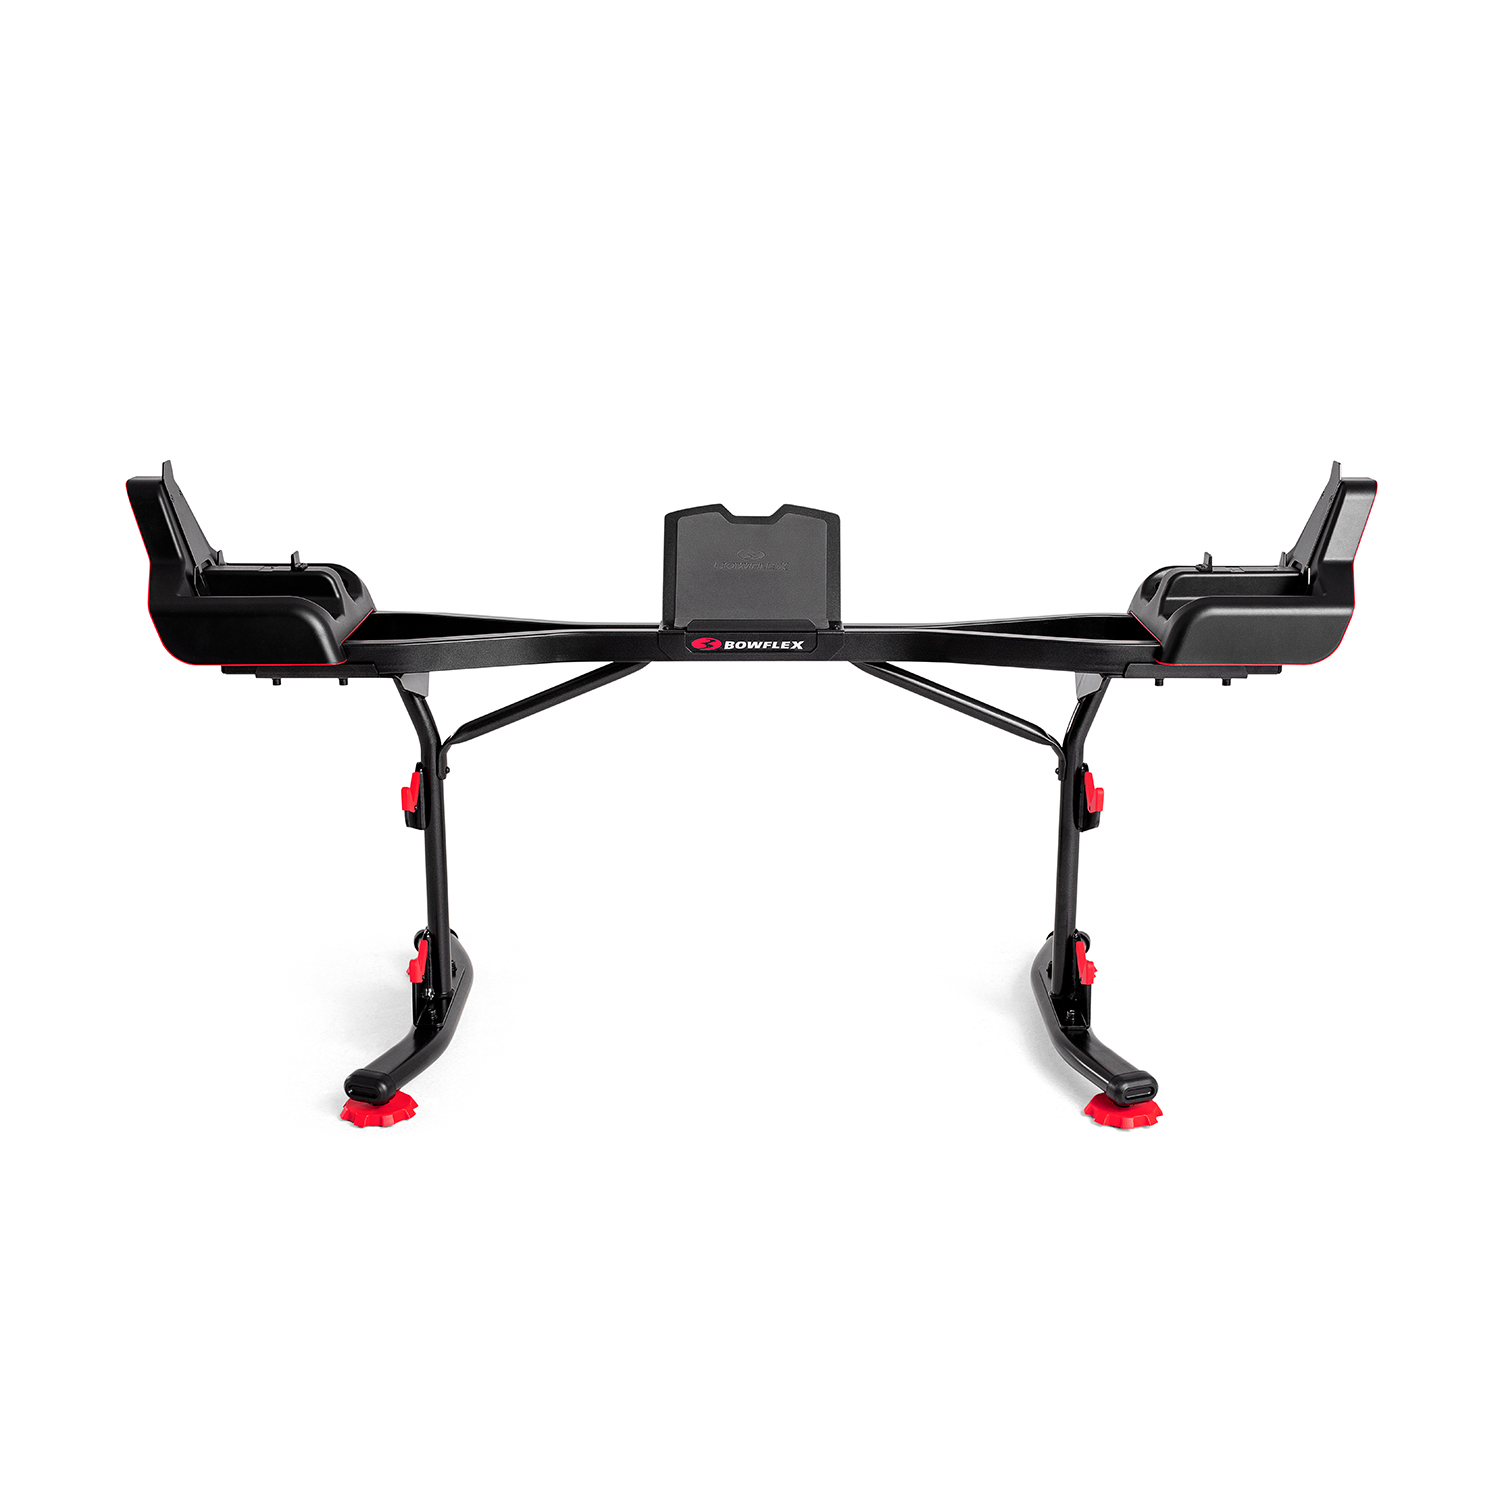 bowflex stand for selecttech barbell and curl bar with media rack